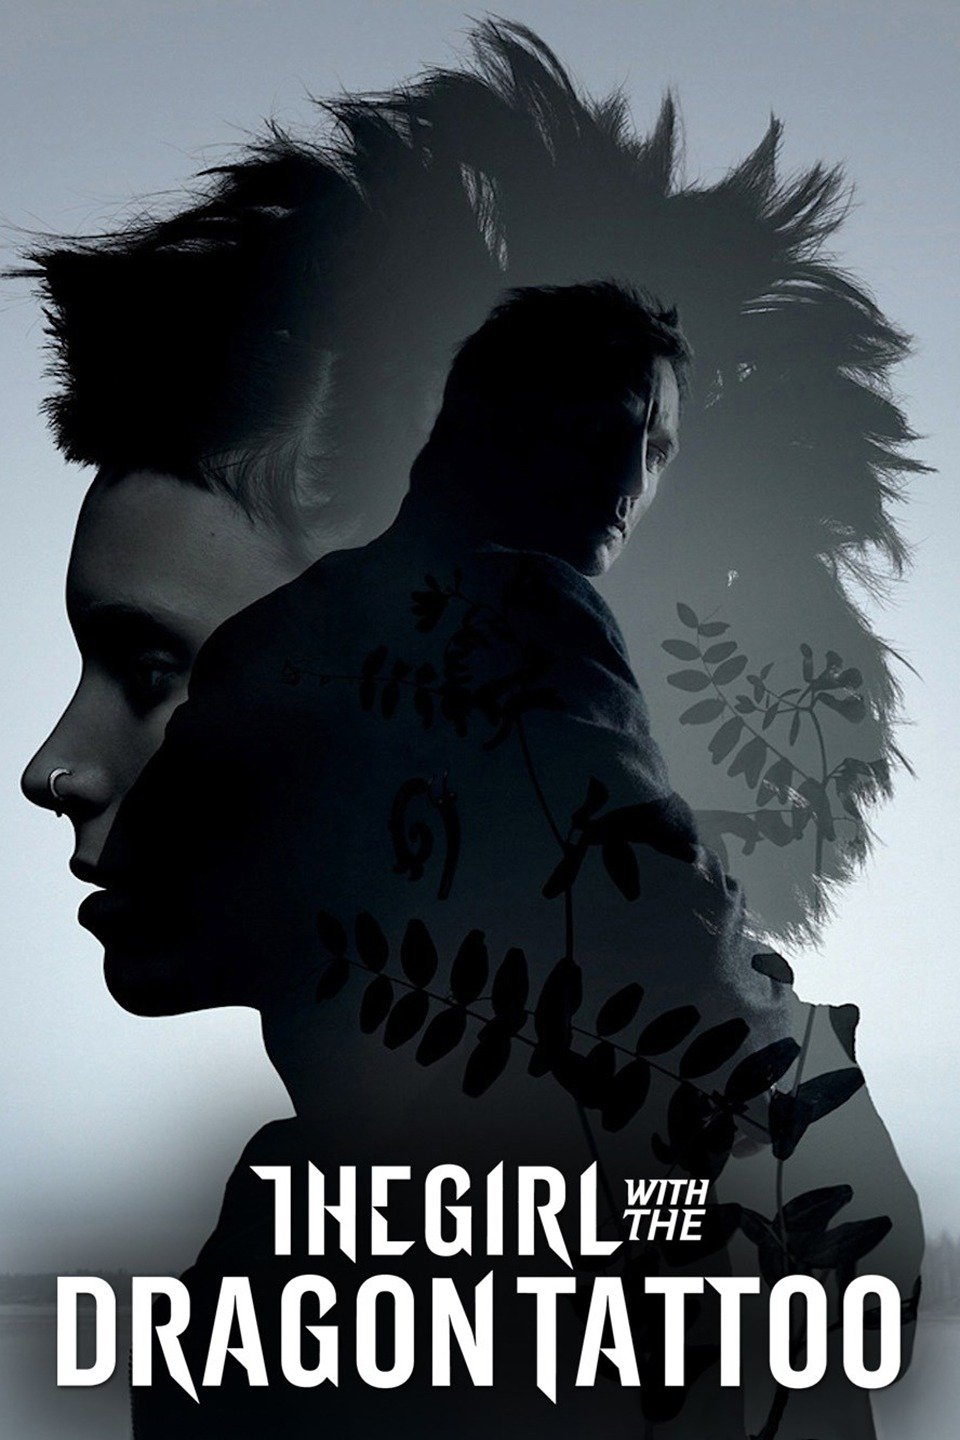 The Girl With The Dragon Tattoo(2011)[1080p][Hindi Audio Only][Dzrg Torrents] ~ 3.50 GB